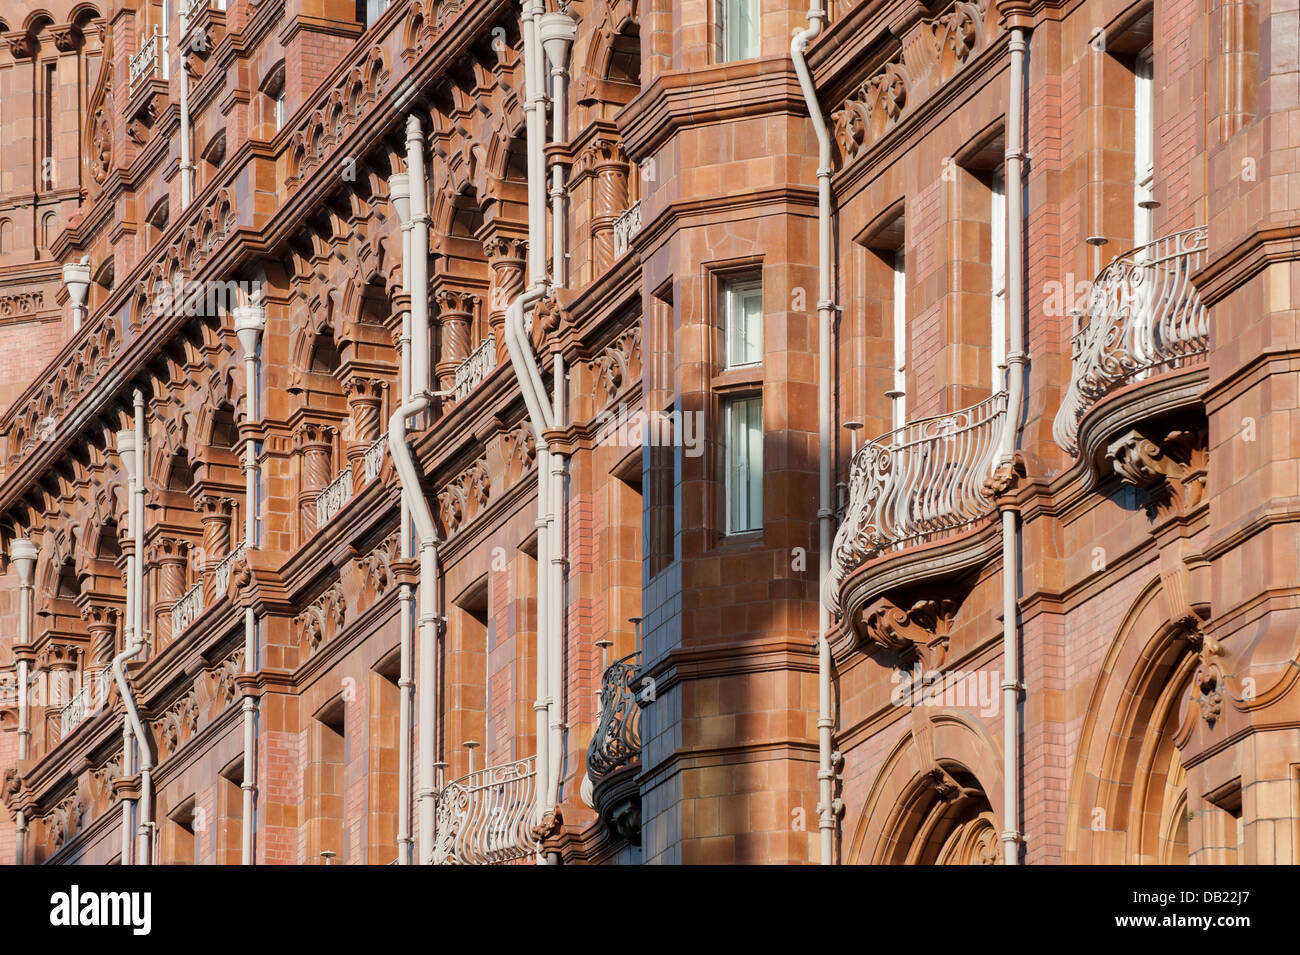 An abstract view of Manchester Midland Hotel in the city centre. - Stock Image